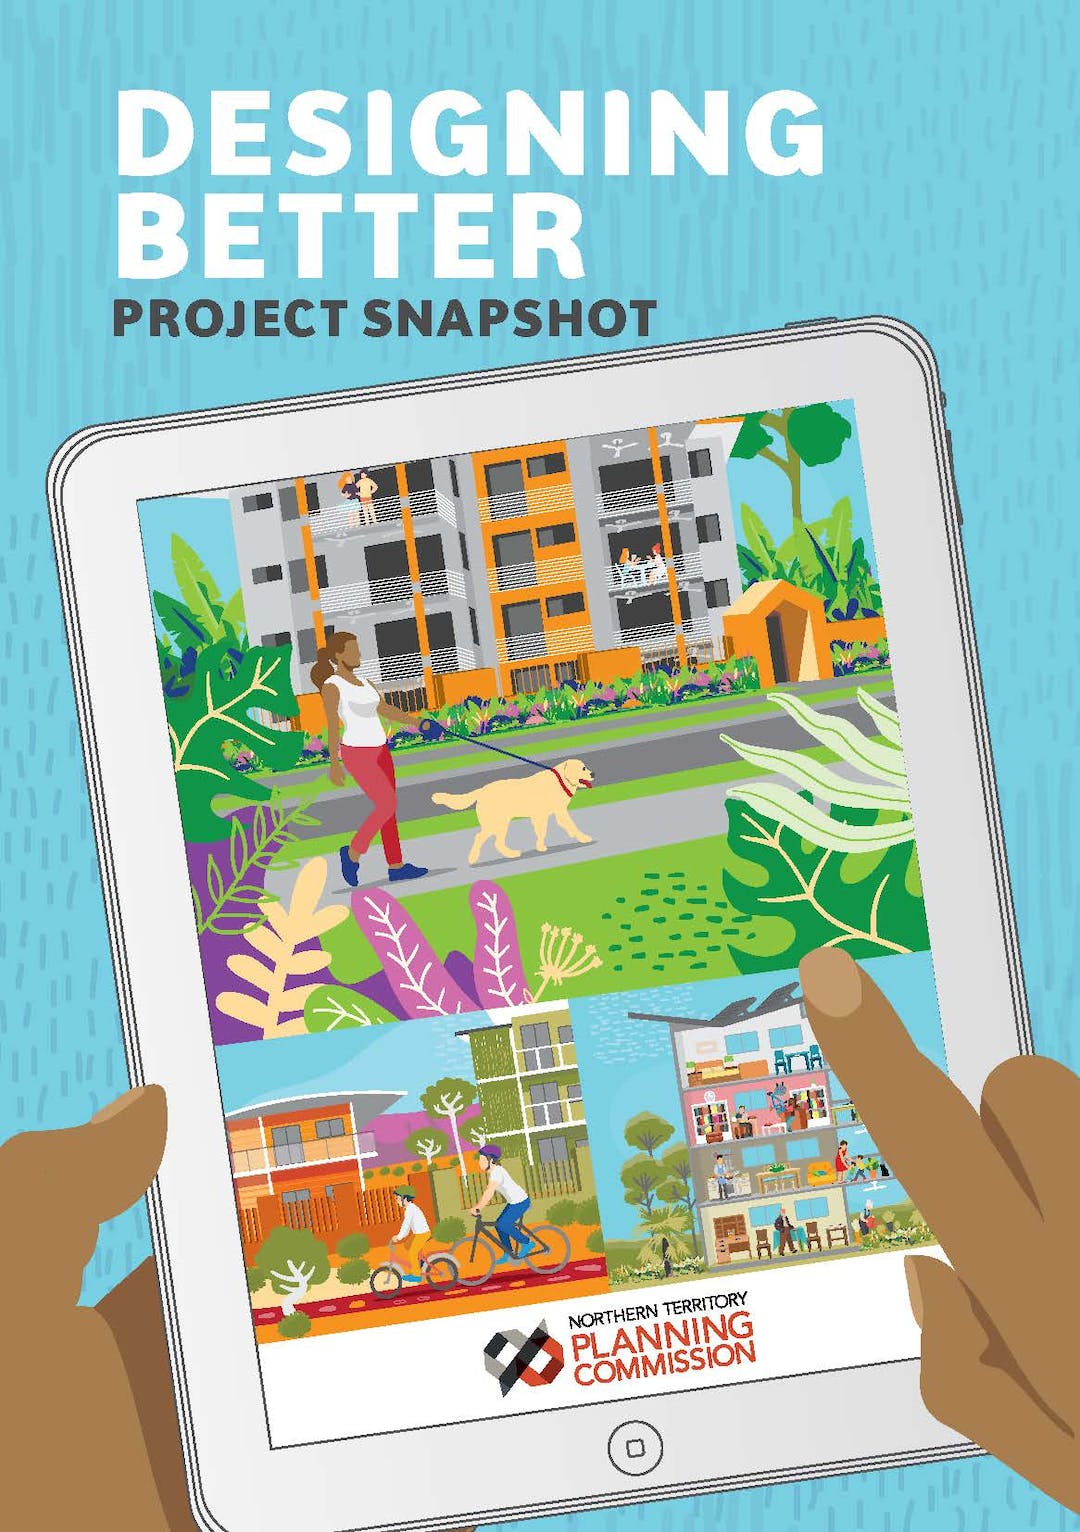 Designing Better cover image - sylistic building and landscaping plan with NTPC logo and text: DESIGNING BETTER Ideas for Improving Mixed Use and Residential Apartment Developments